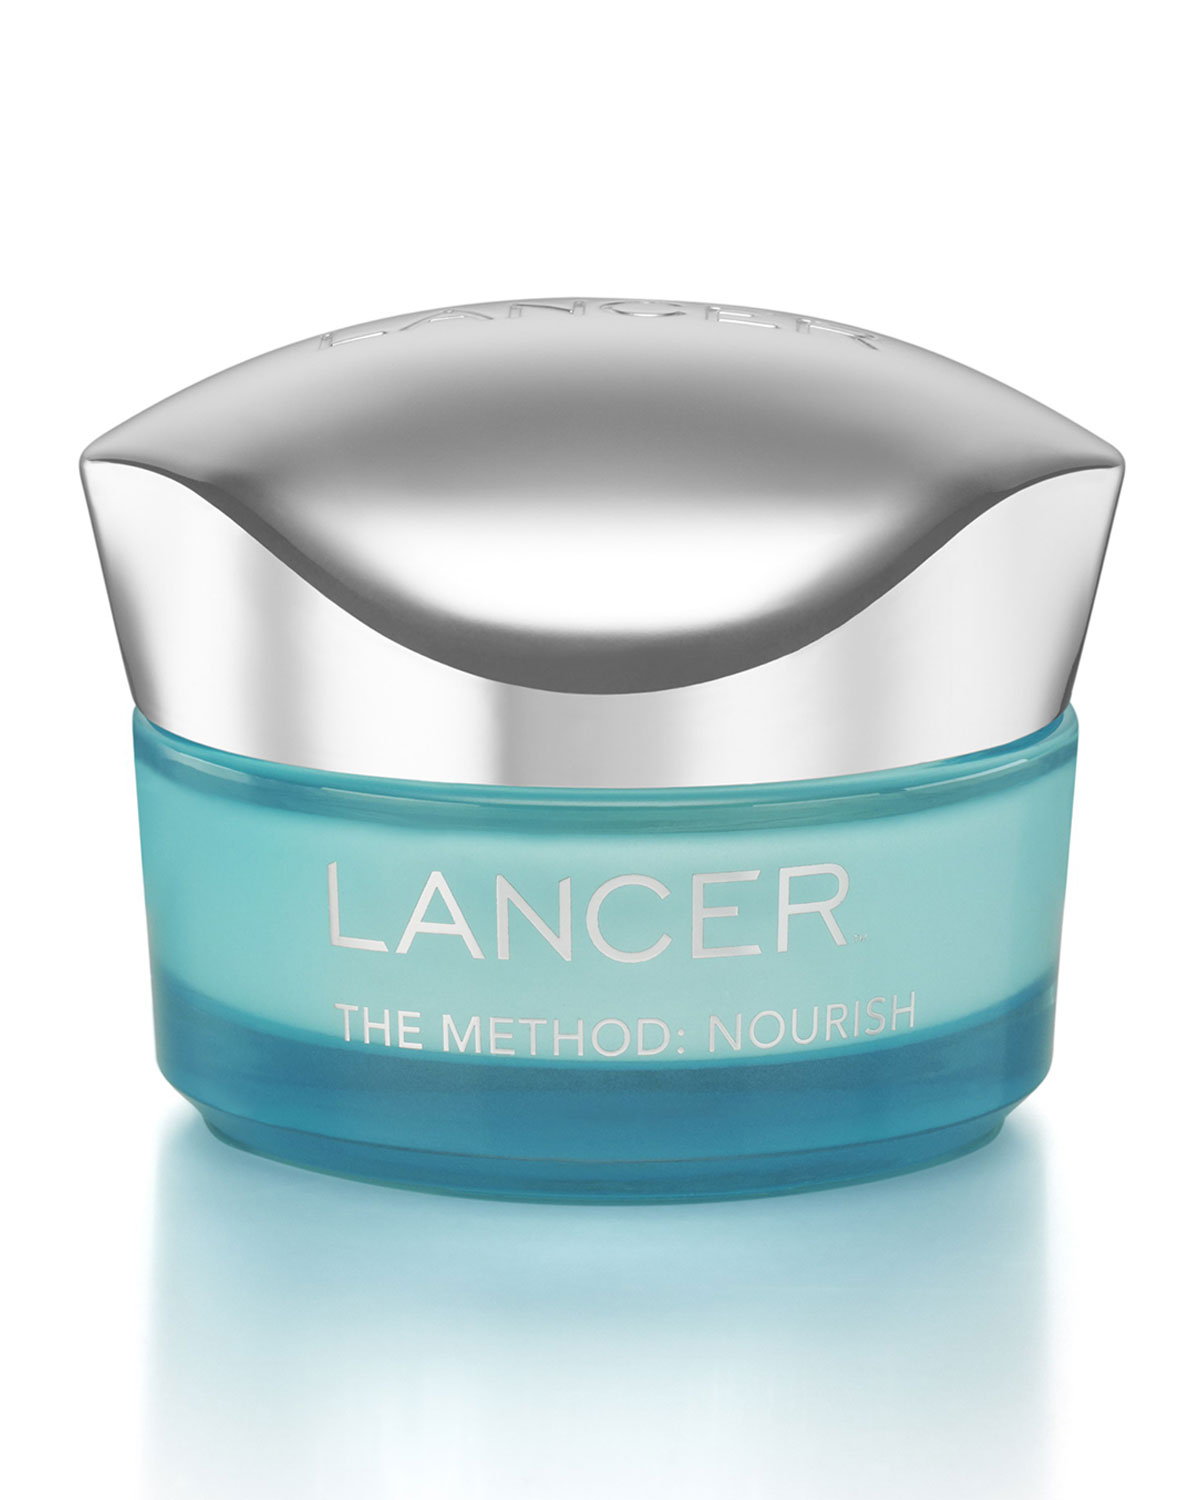 LANCER The Method: Nourish Moisturizer - Normal And Combination Skin, 1.7 Oz./ 50 Ml in Colorless